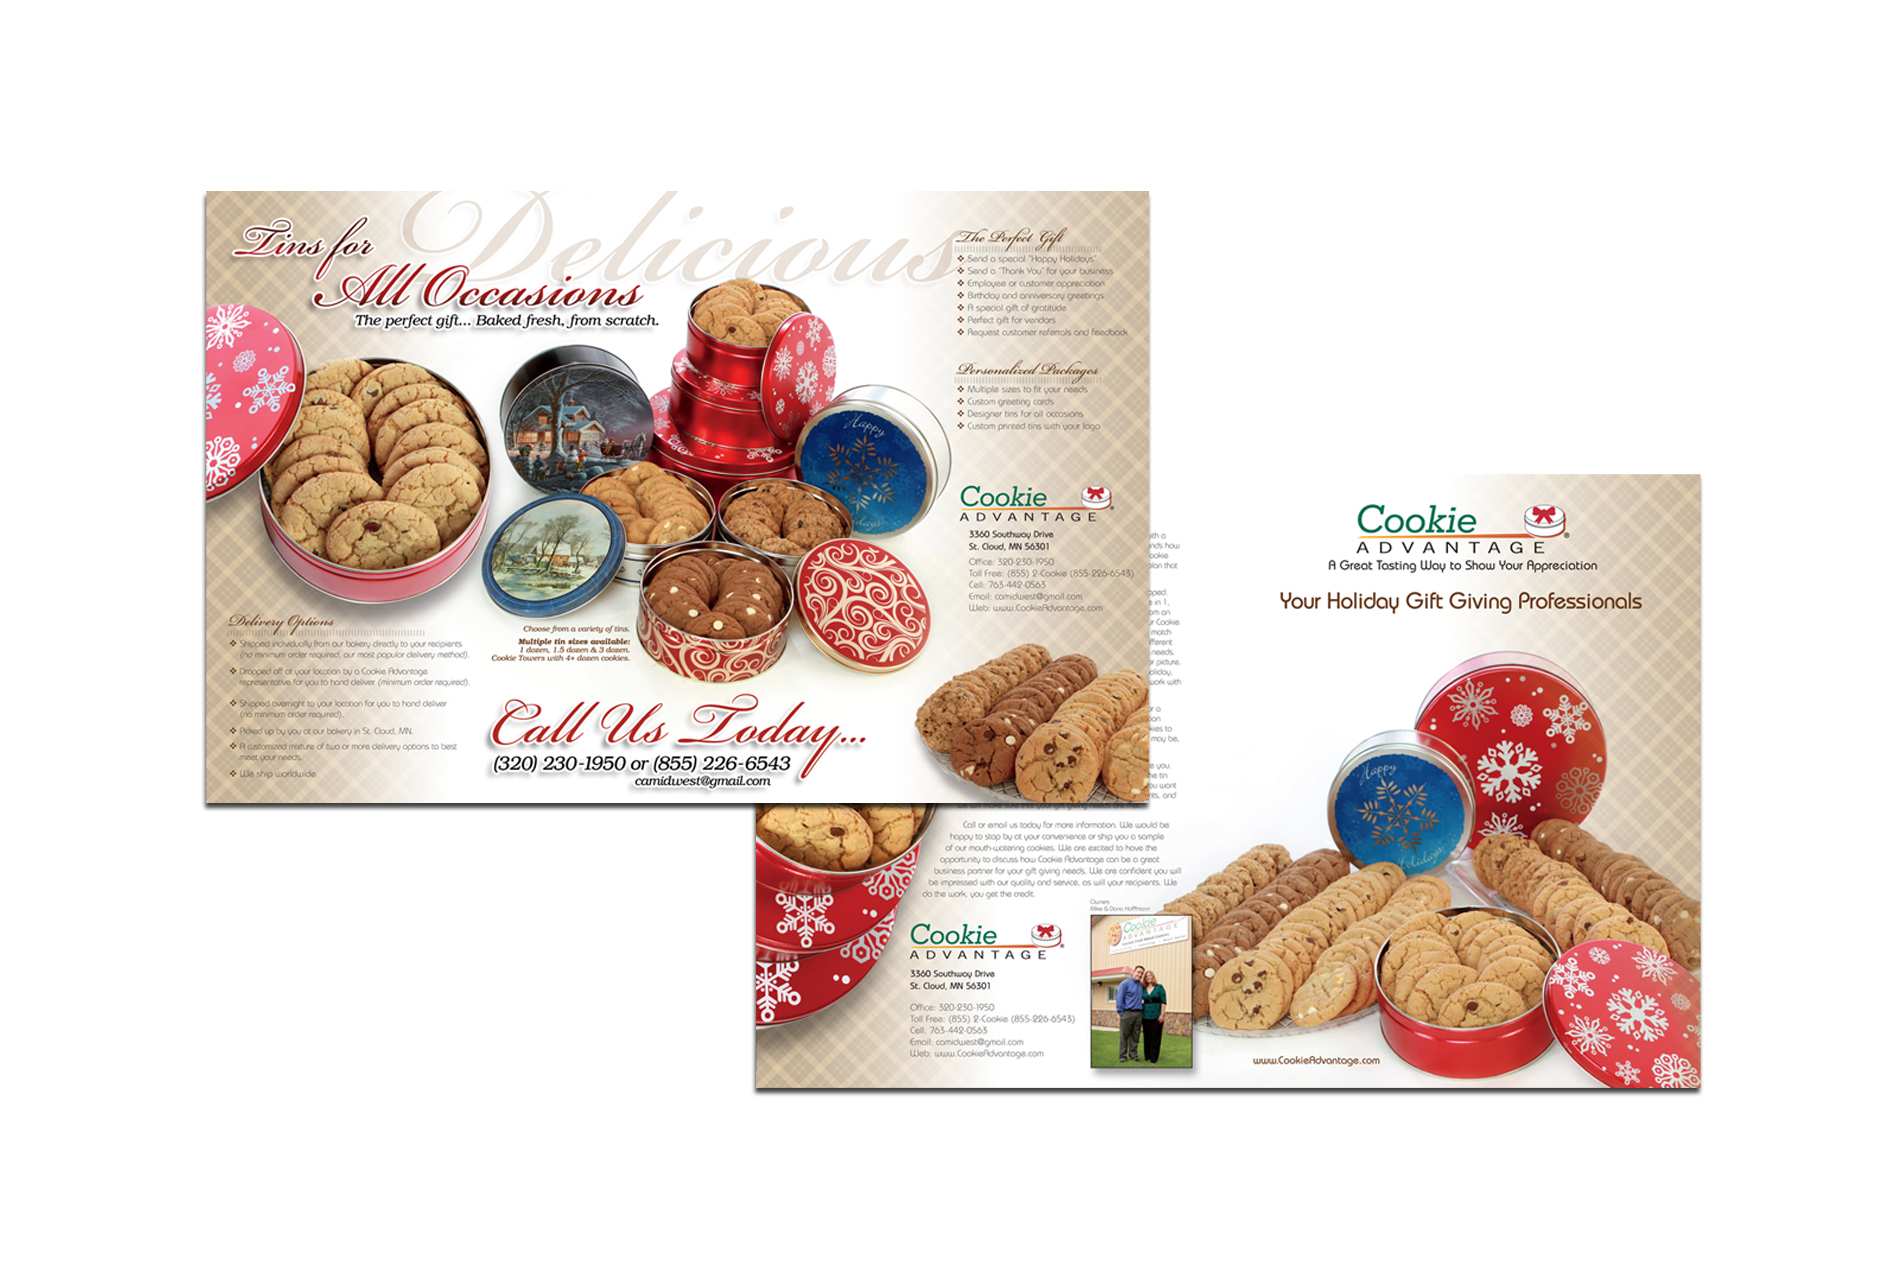 Cookie Advantage Sales Brochure